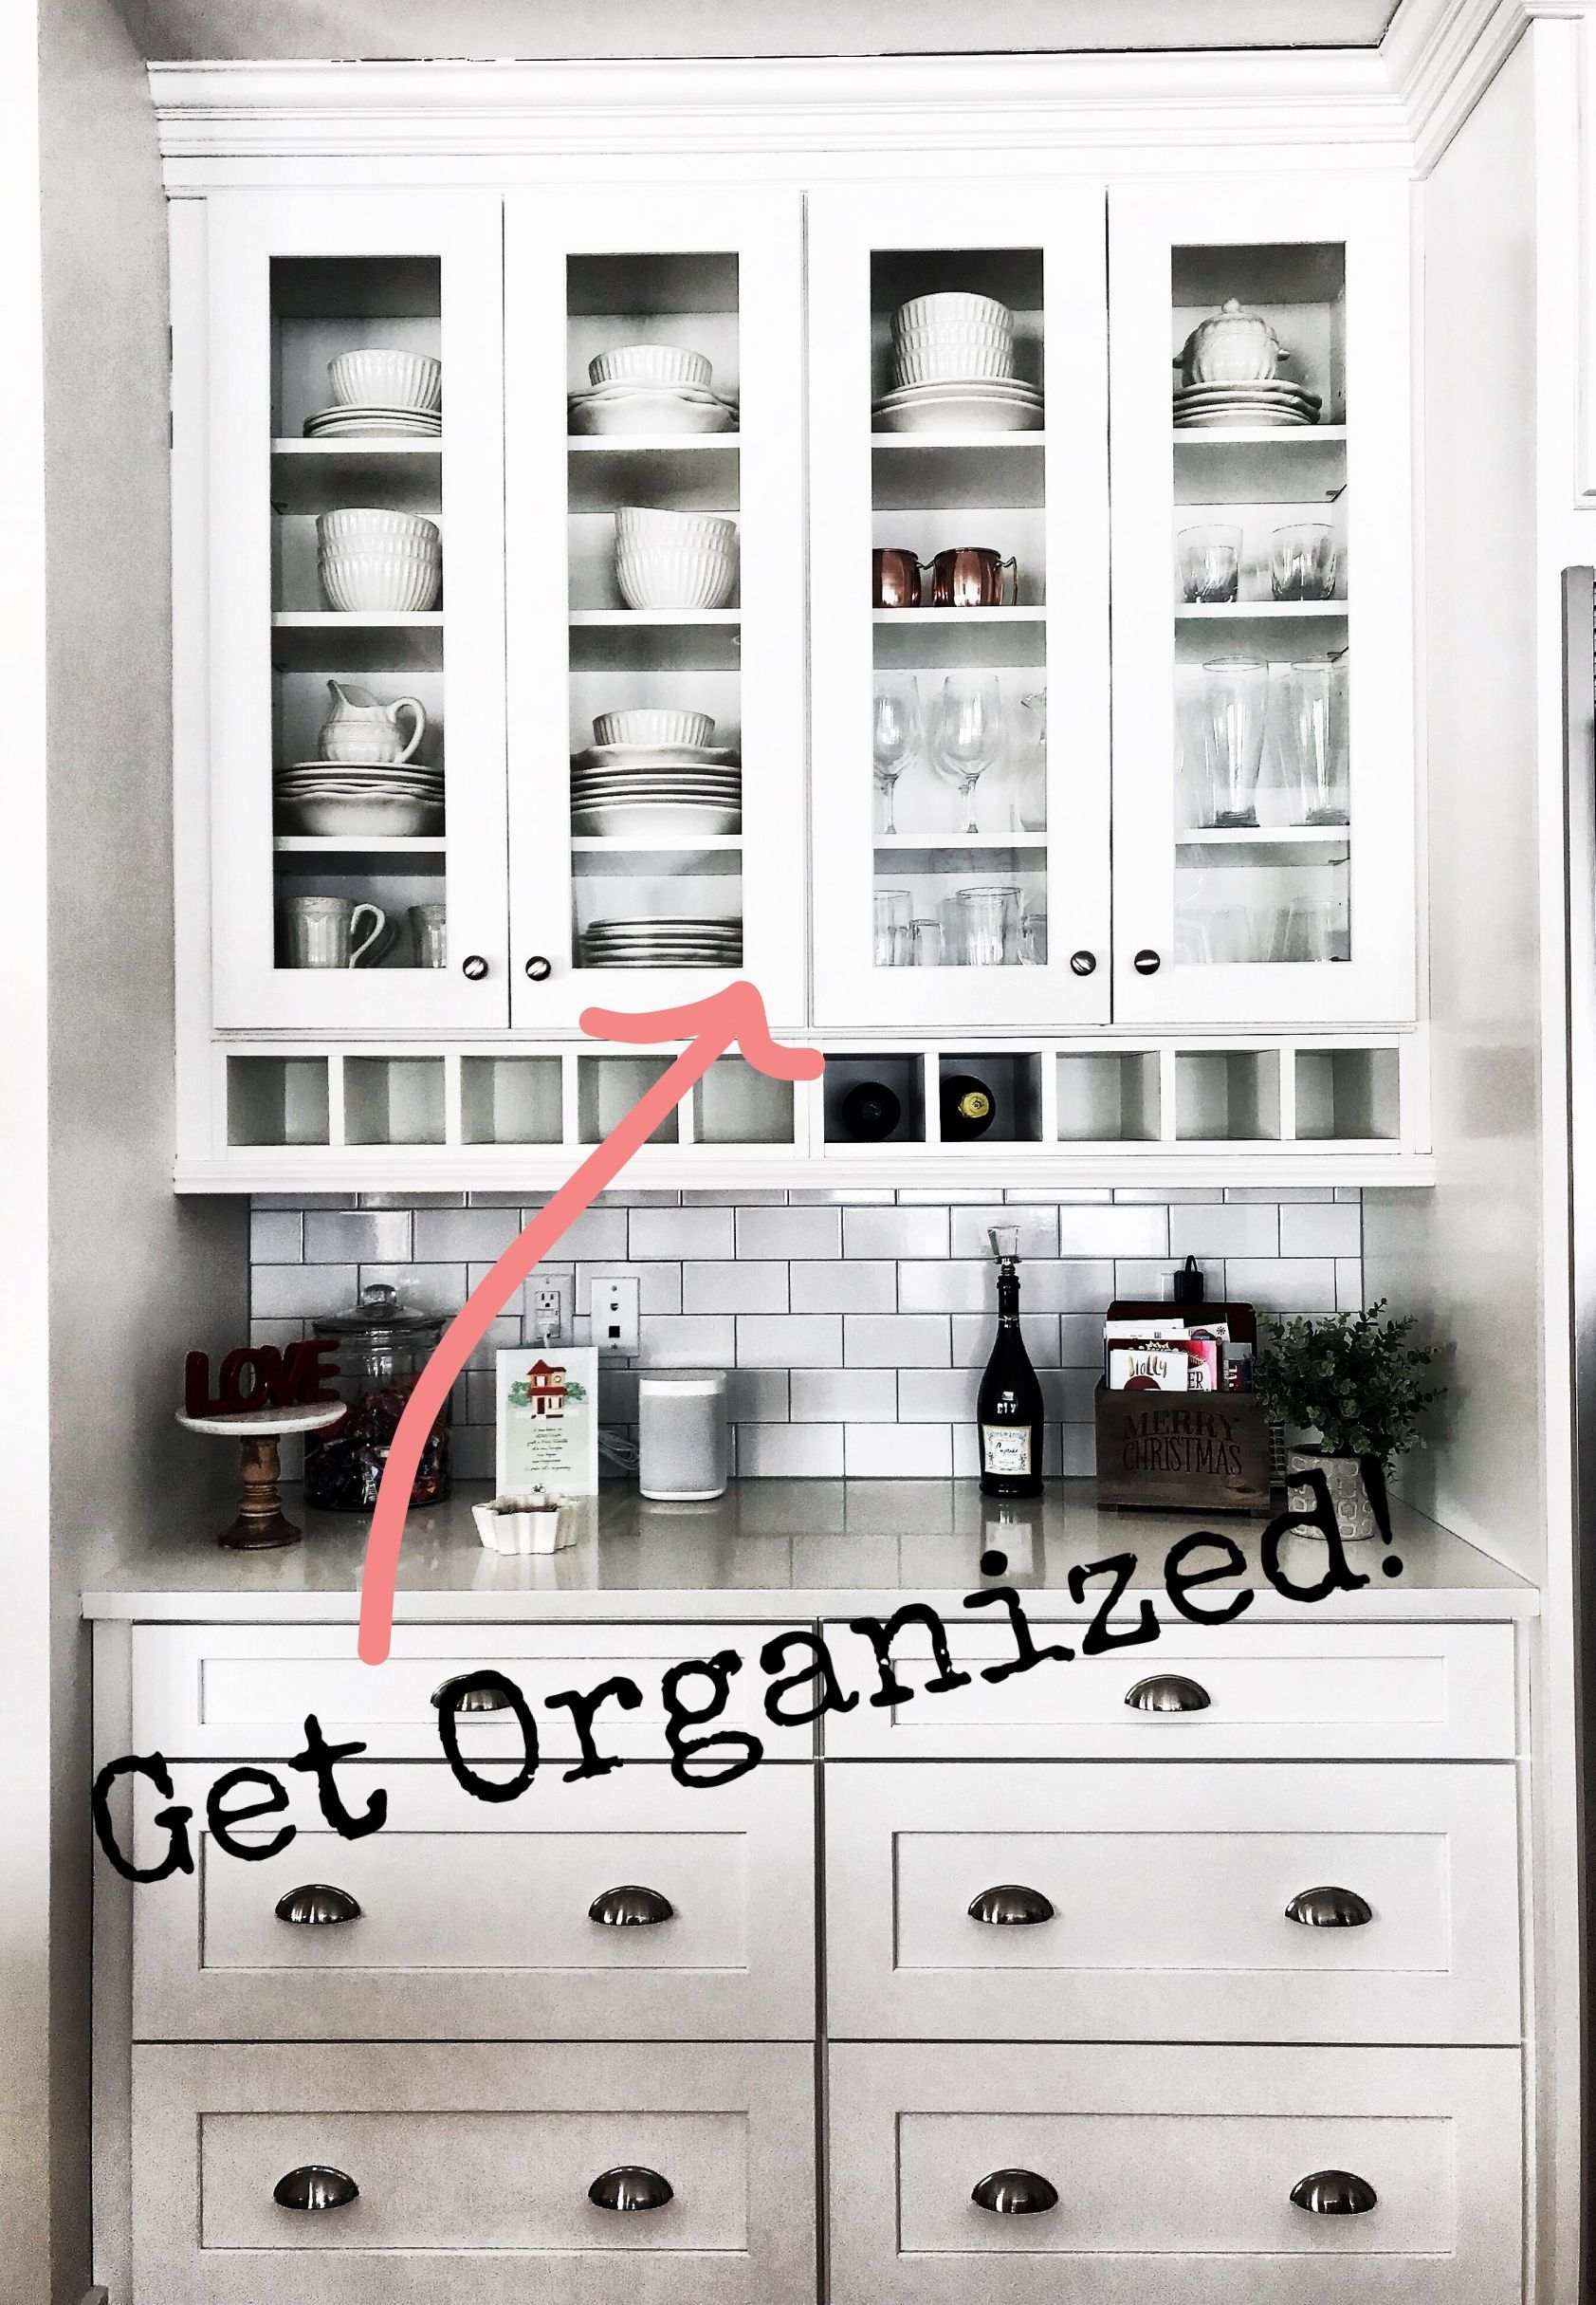 Ideas for organizing kitchen display cabinets and dining room ...